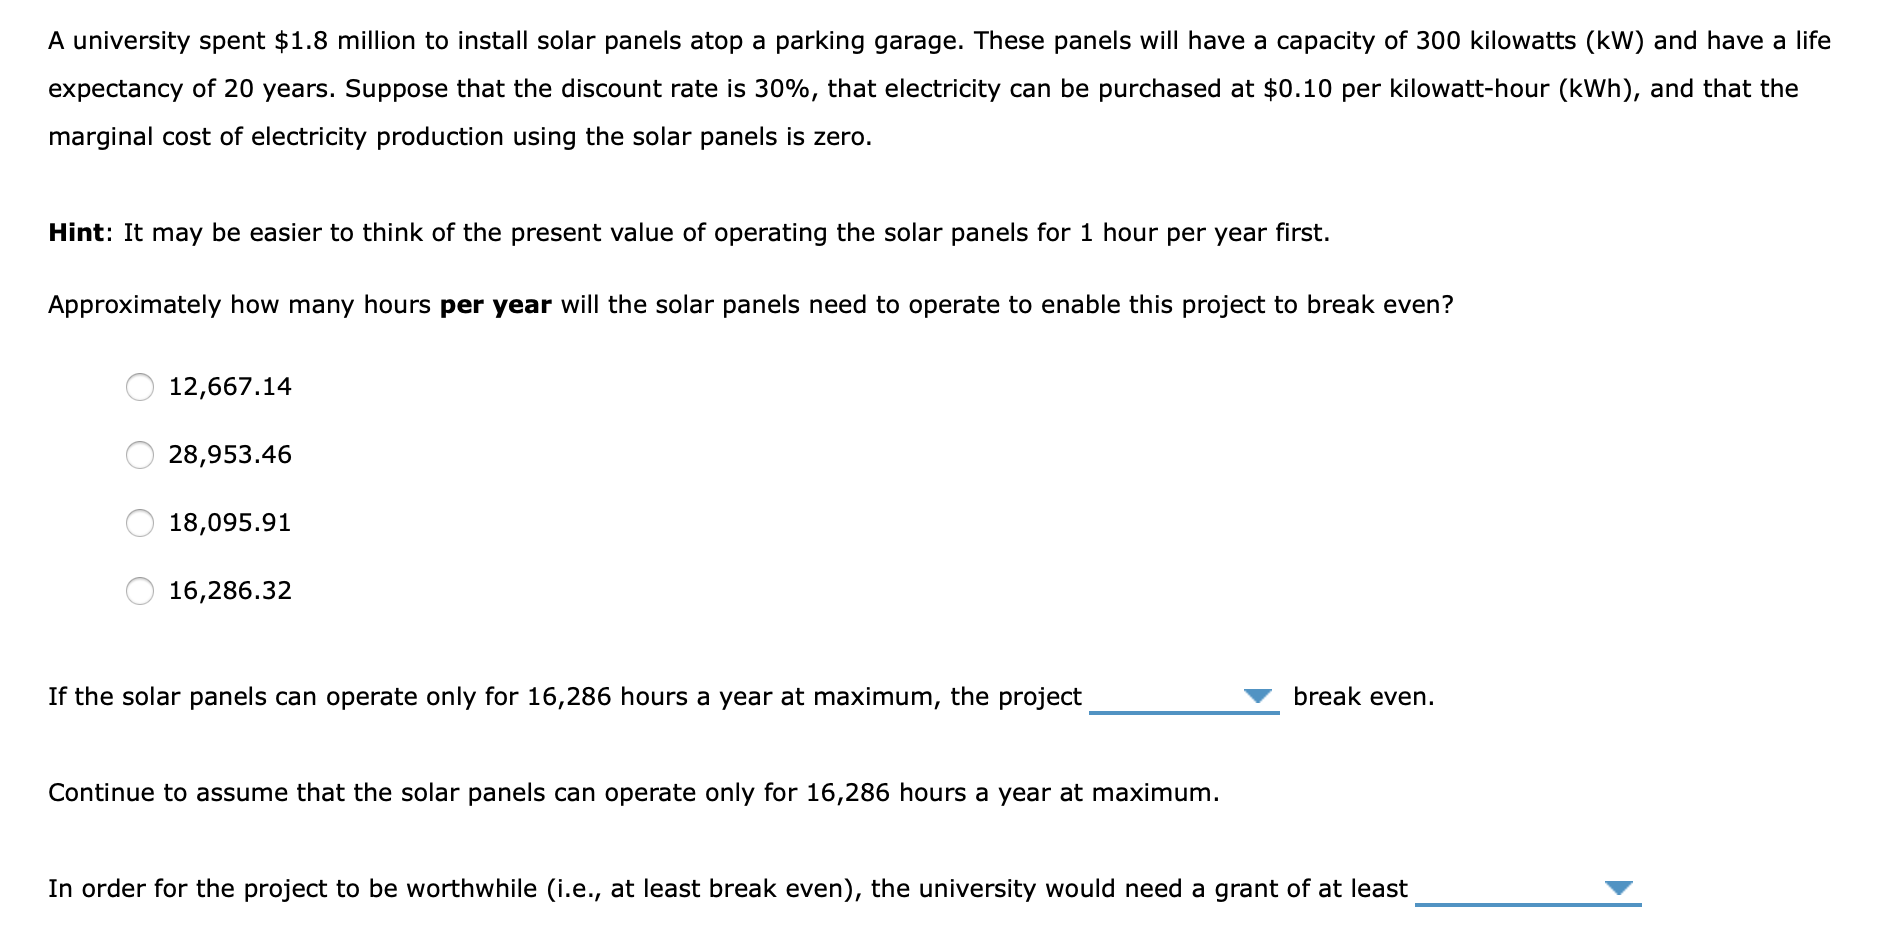 A university spent $1.8 million to install solar panels atop a parking garage. These panels will have a capacity of 300 kilow